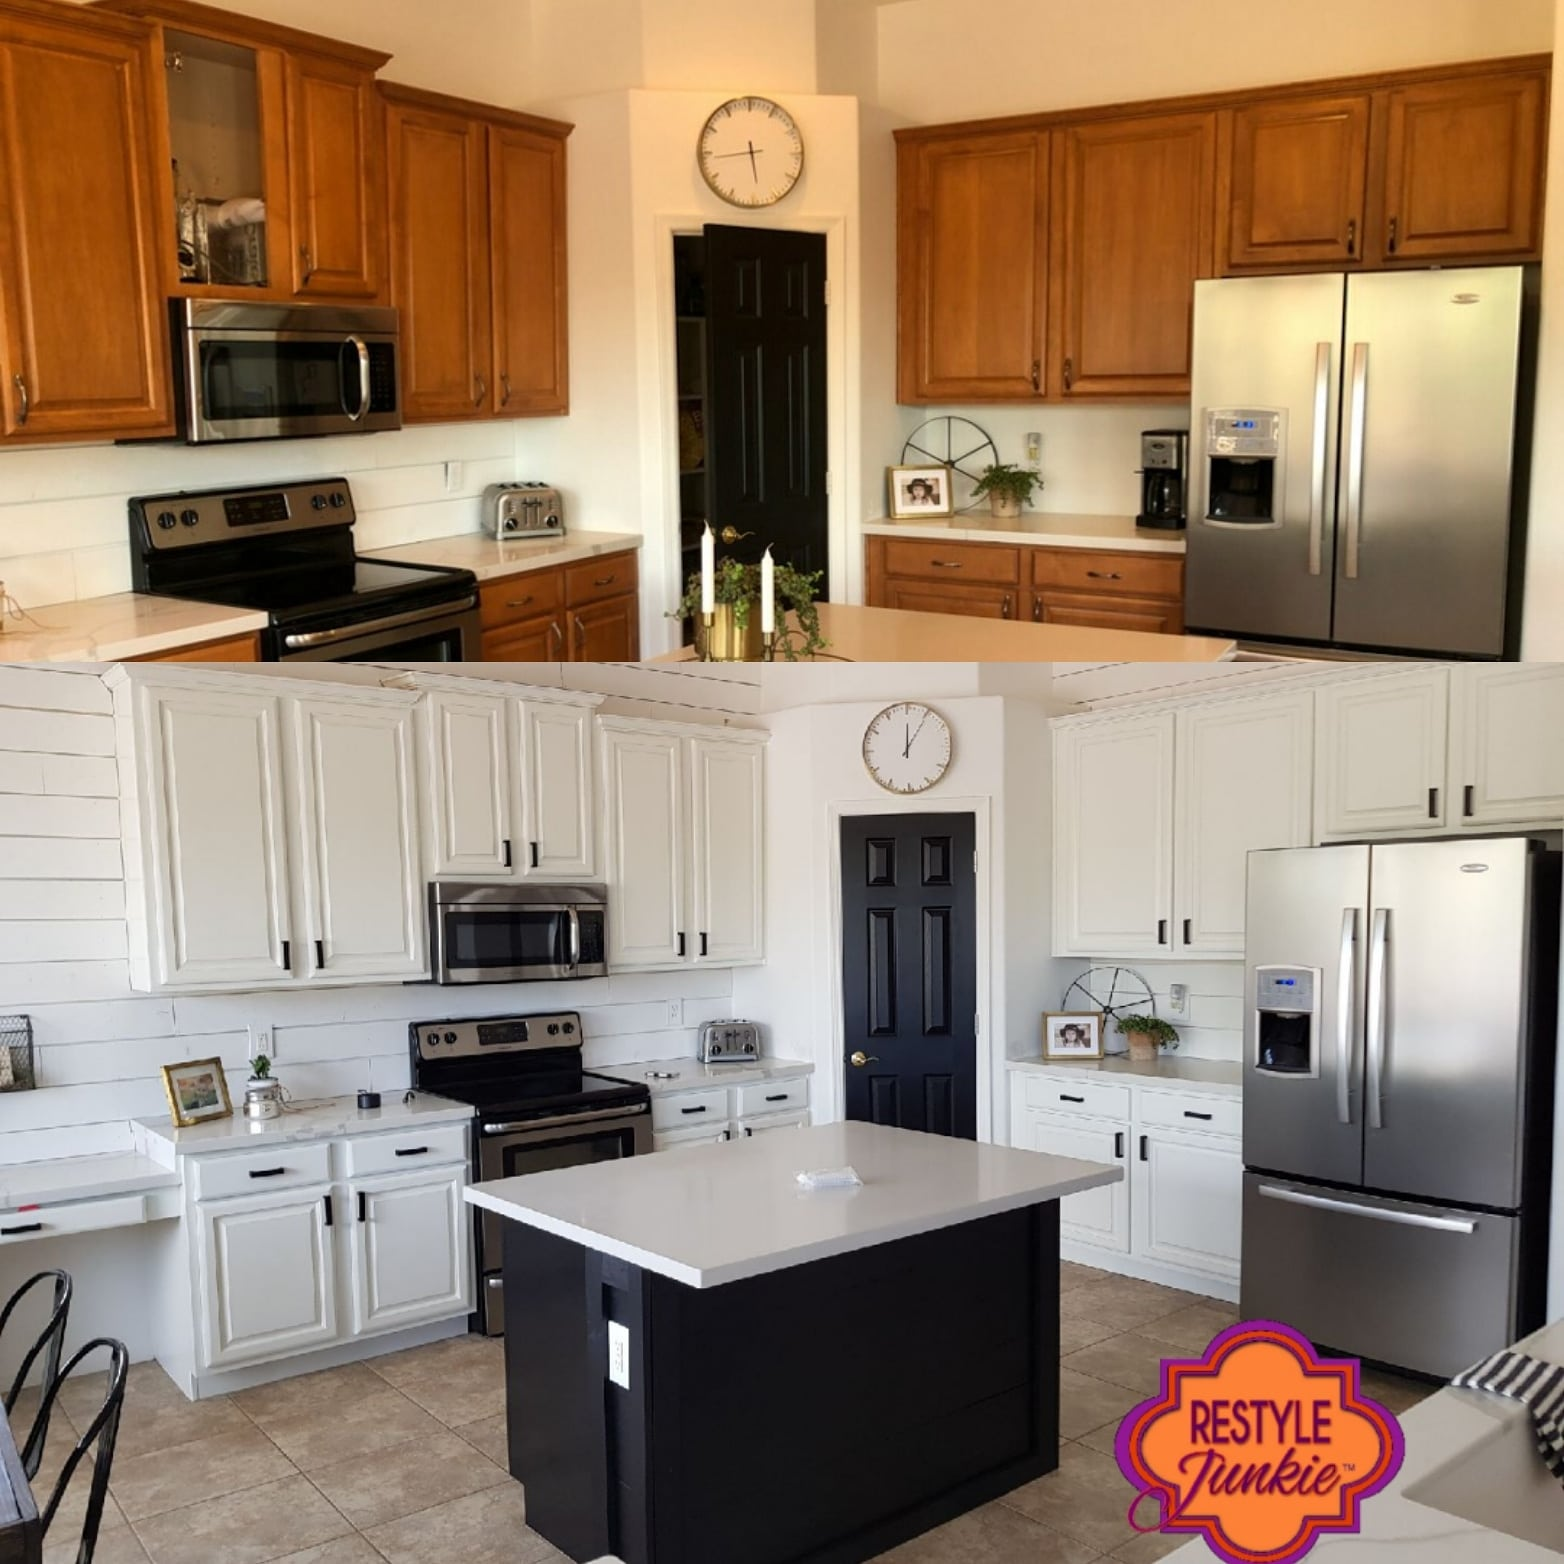 White kitchen cabinets before and after picture.